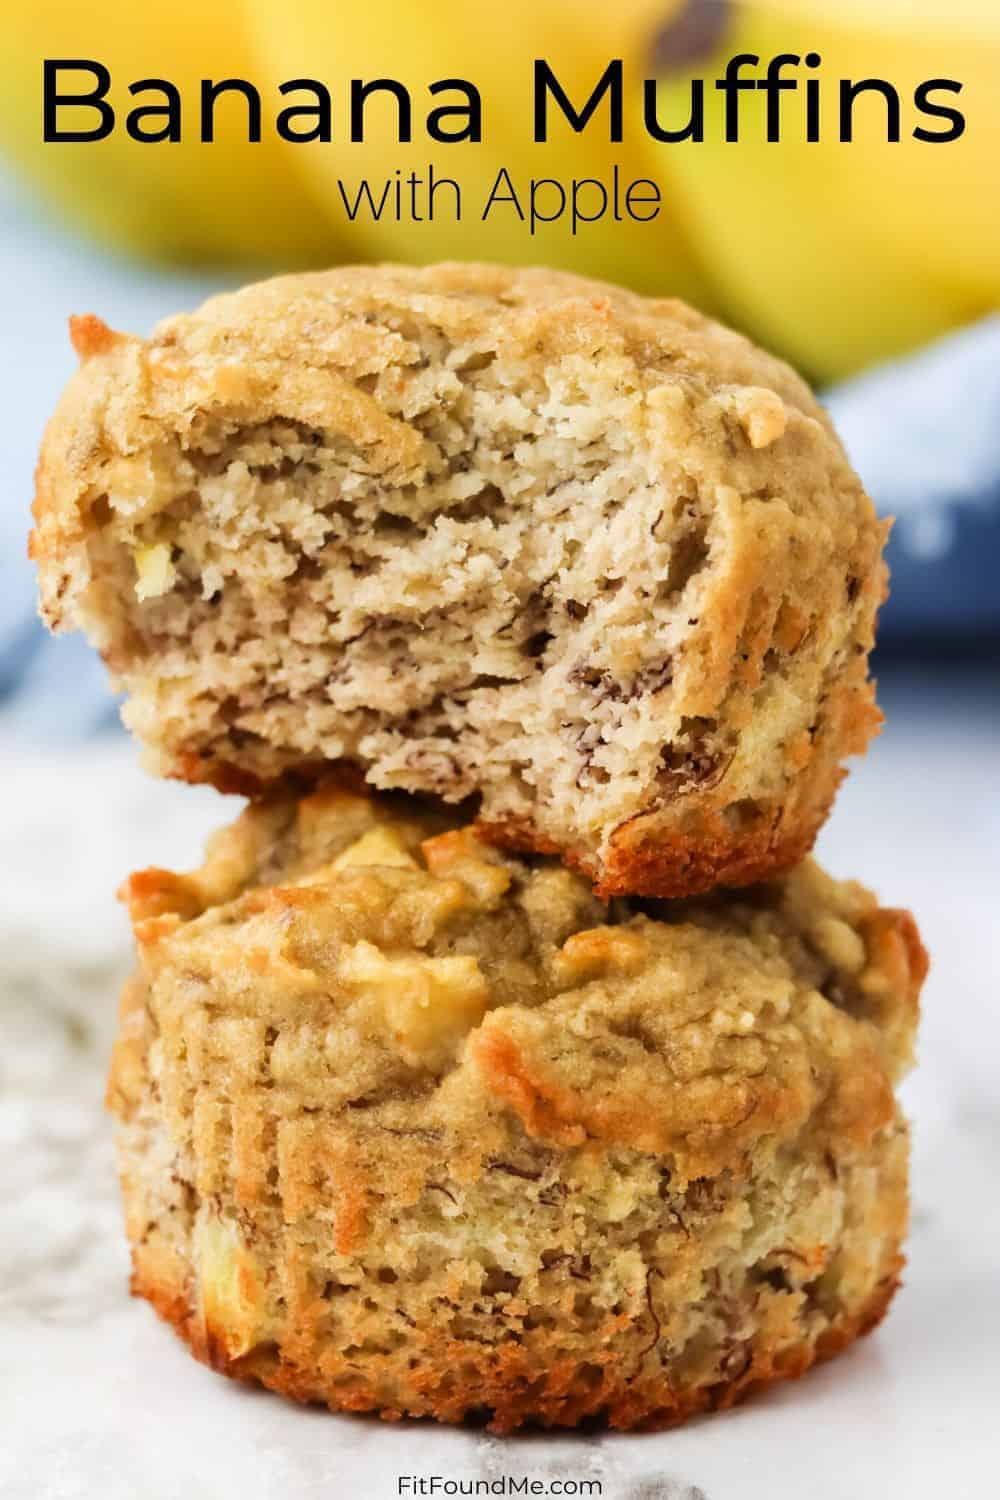 banana muffins with apple stacked